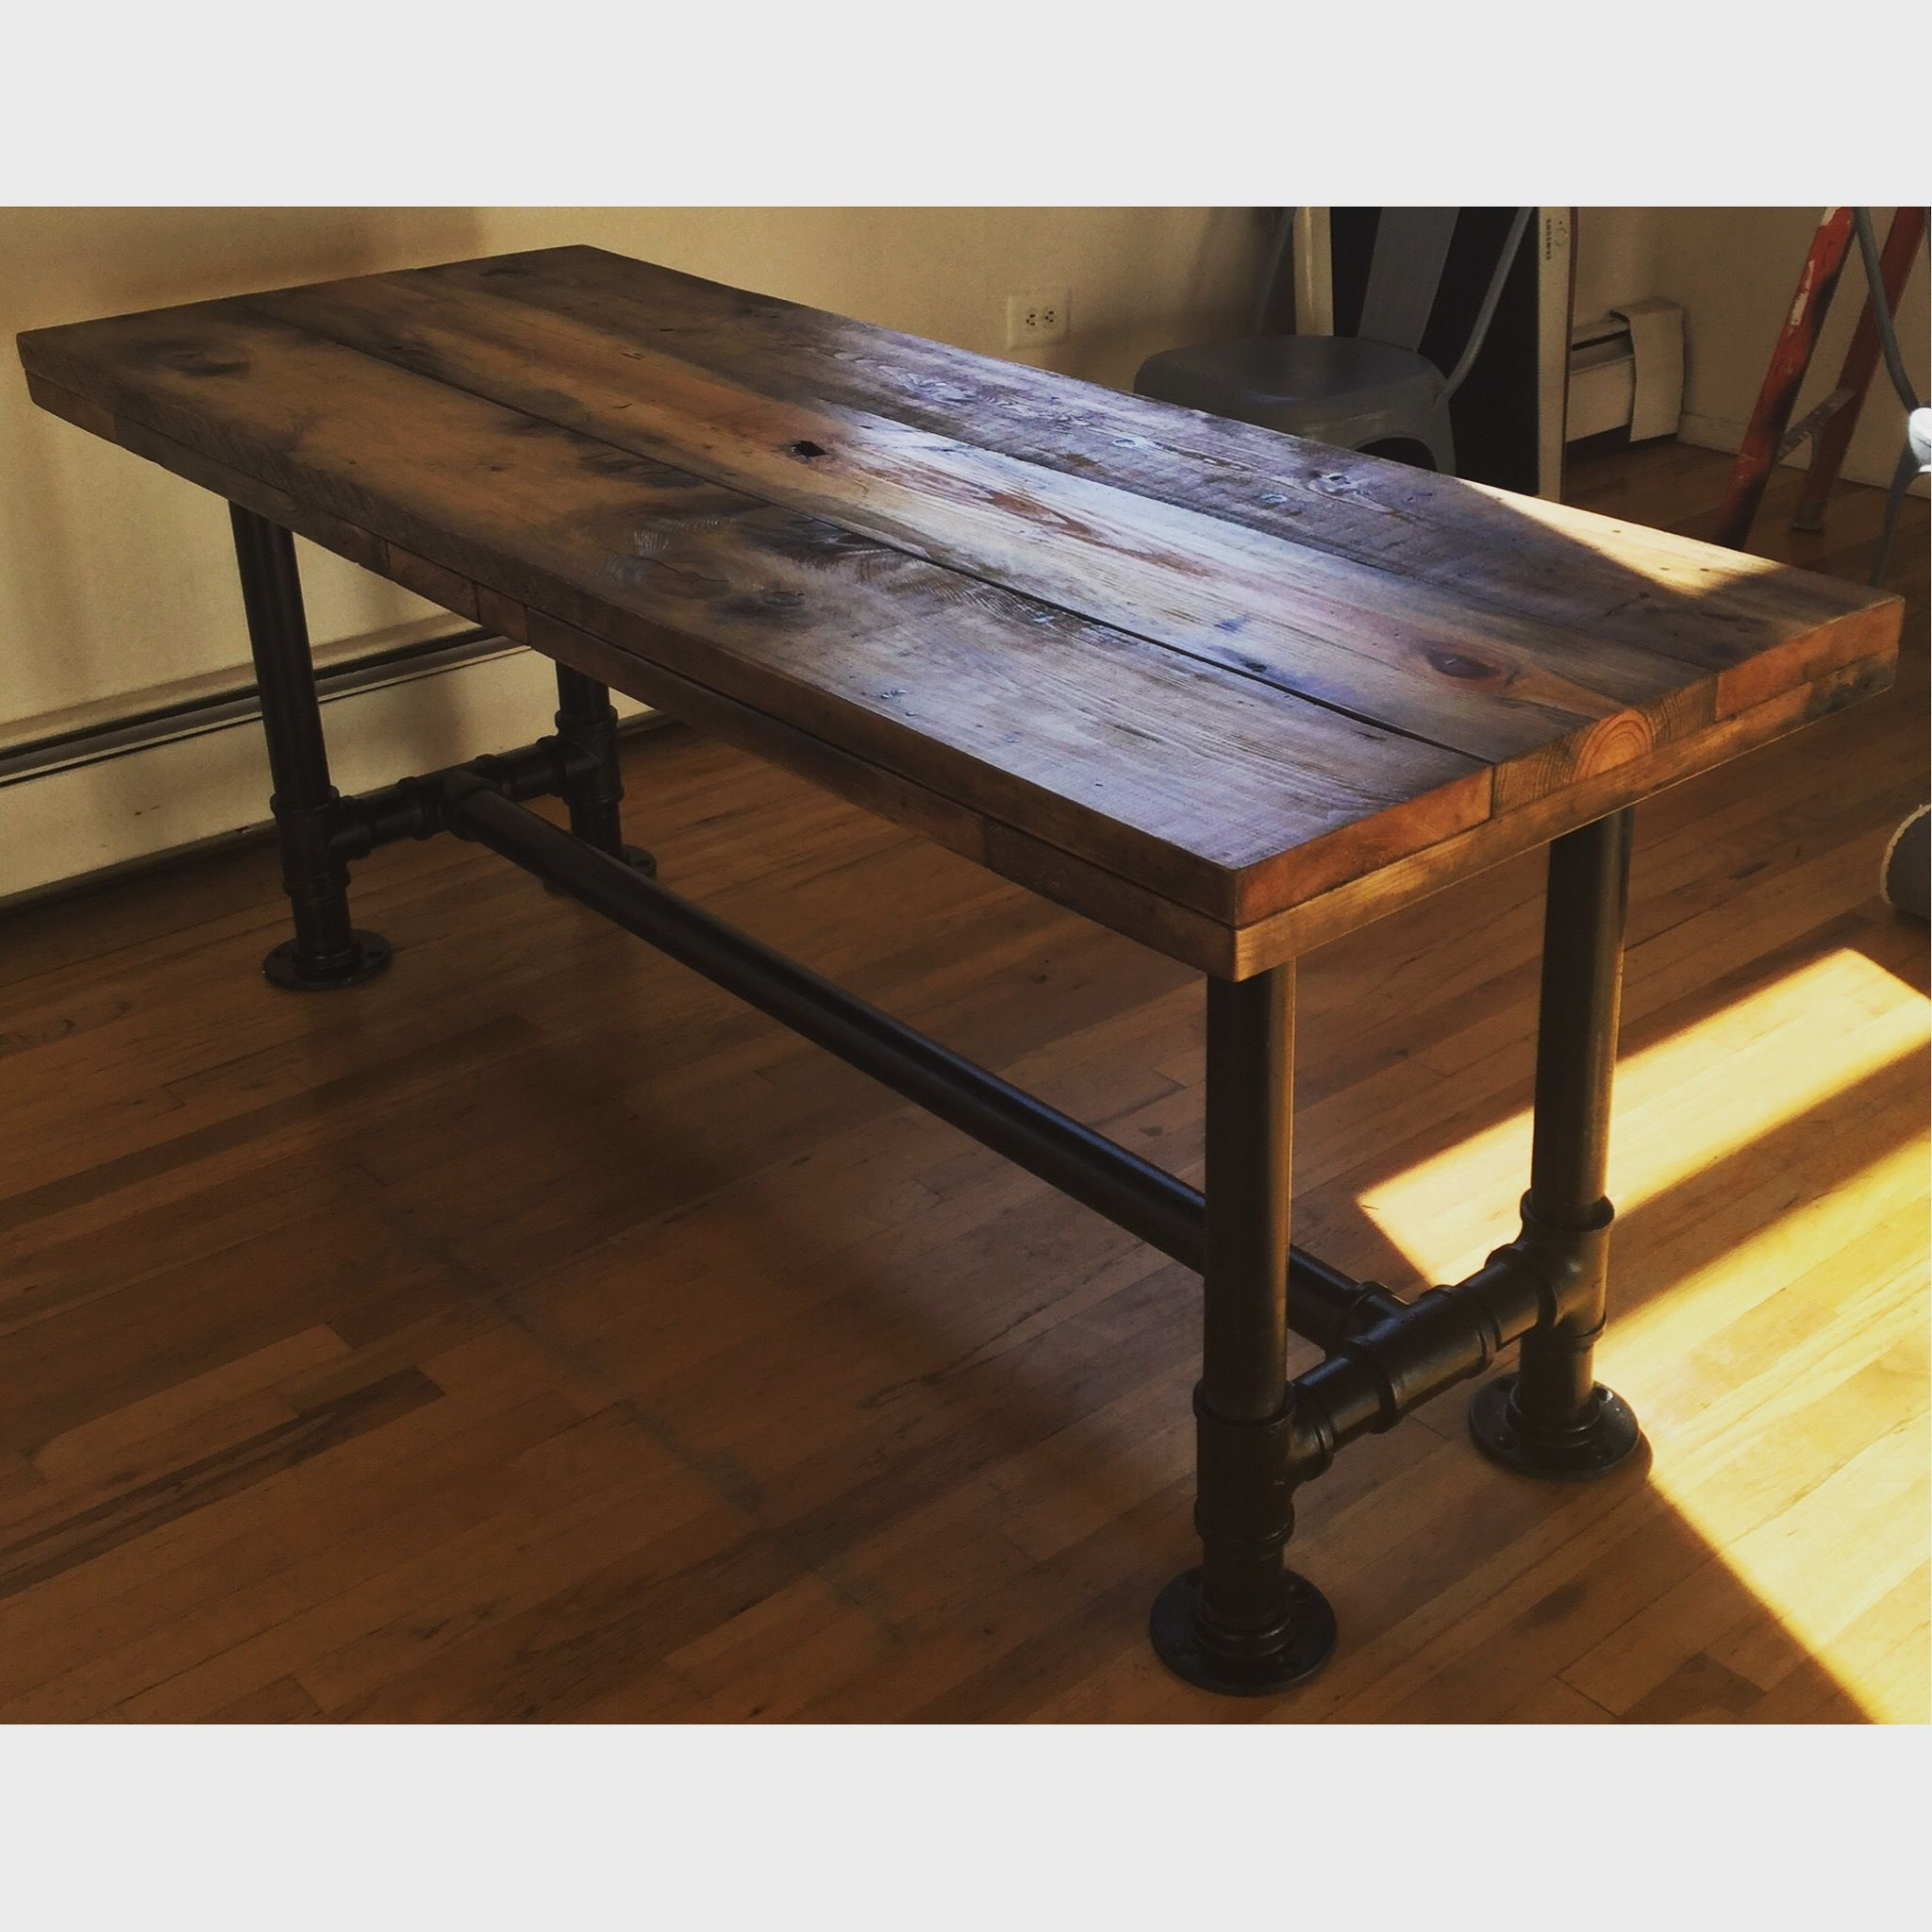 A Hand Made Reclaimed Scaffolding Planks Dining Table To Order From The Small Wood Llc Custommade